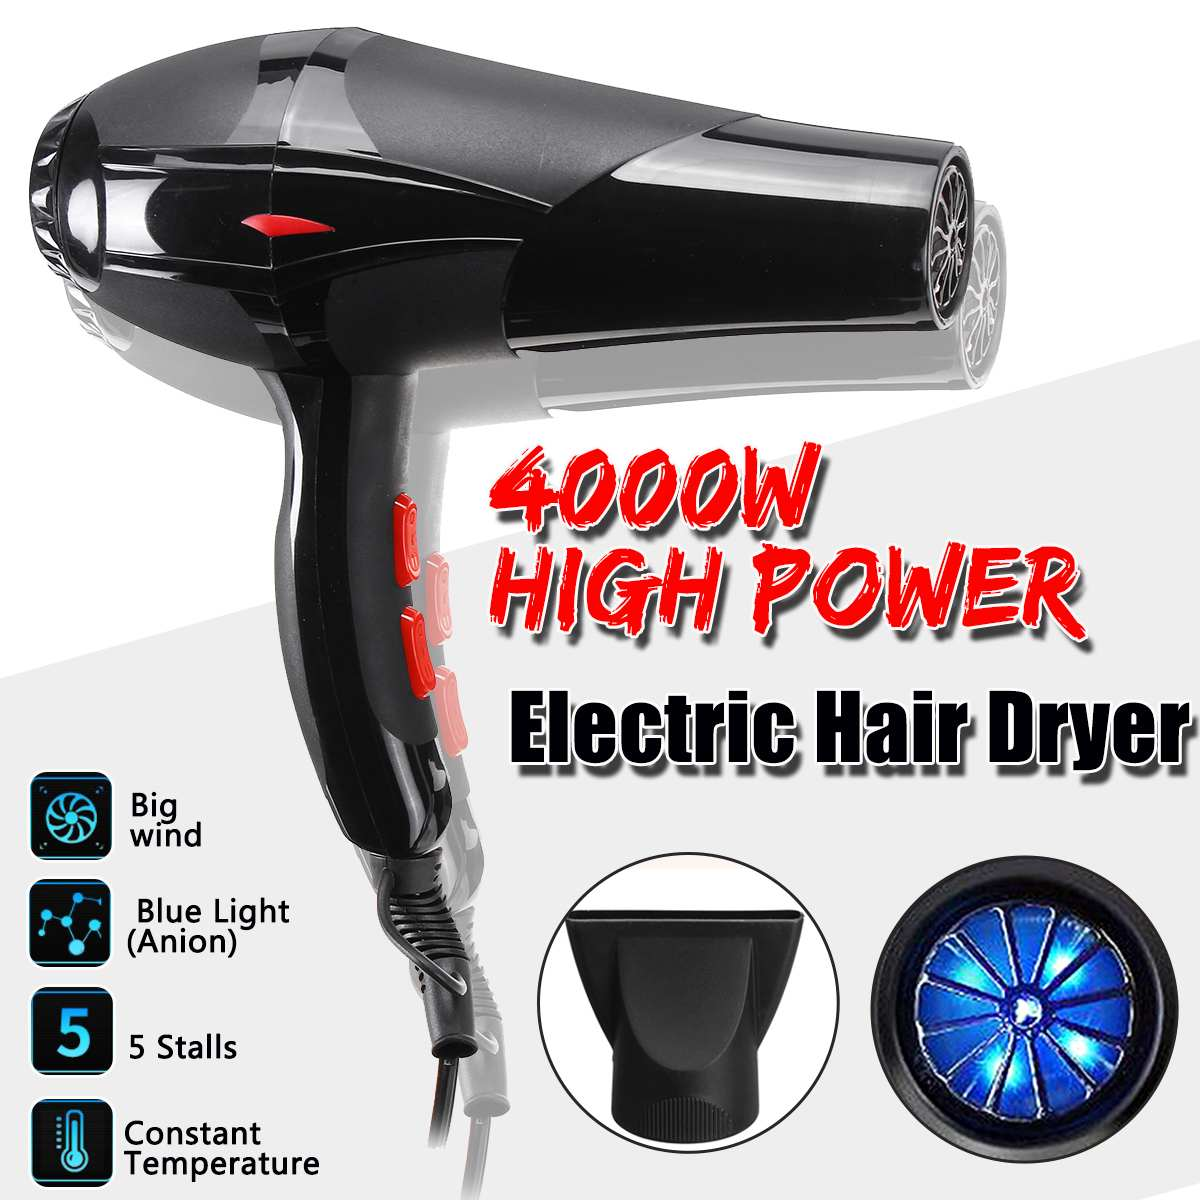 New Becornce 4000W Powerful Hair Dryer For Anion Hairdressing Barber Salon Tool Blow Dryer Low Hairdryer Hair Dryer Fan 220V